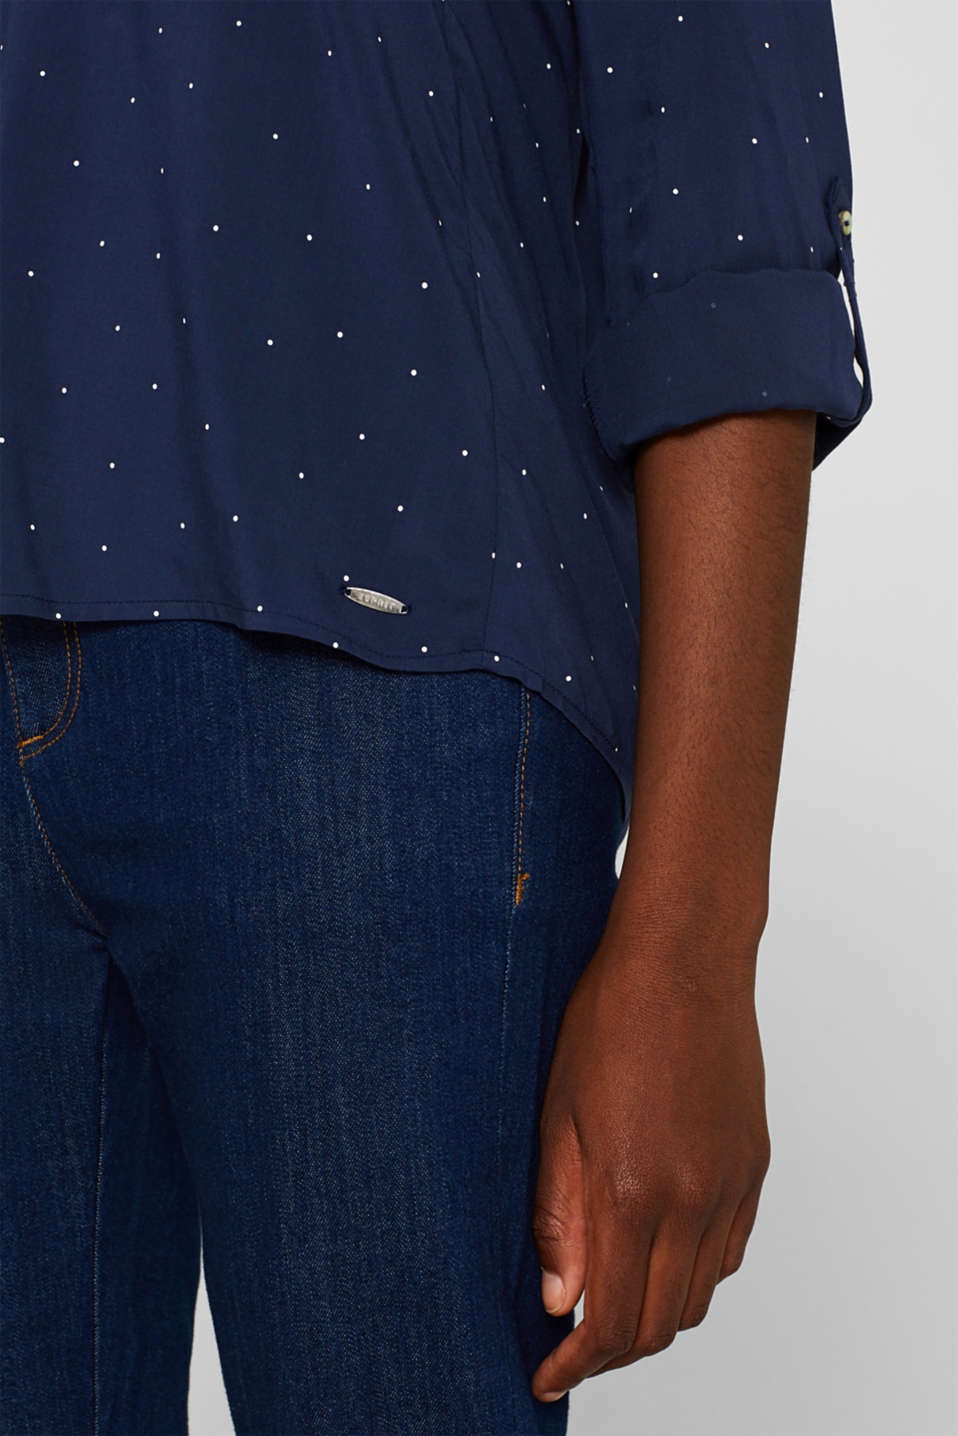 Henley blouse with polka dots and turn-up sleeves, NAVY, detail image number 5